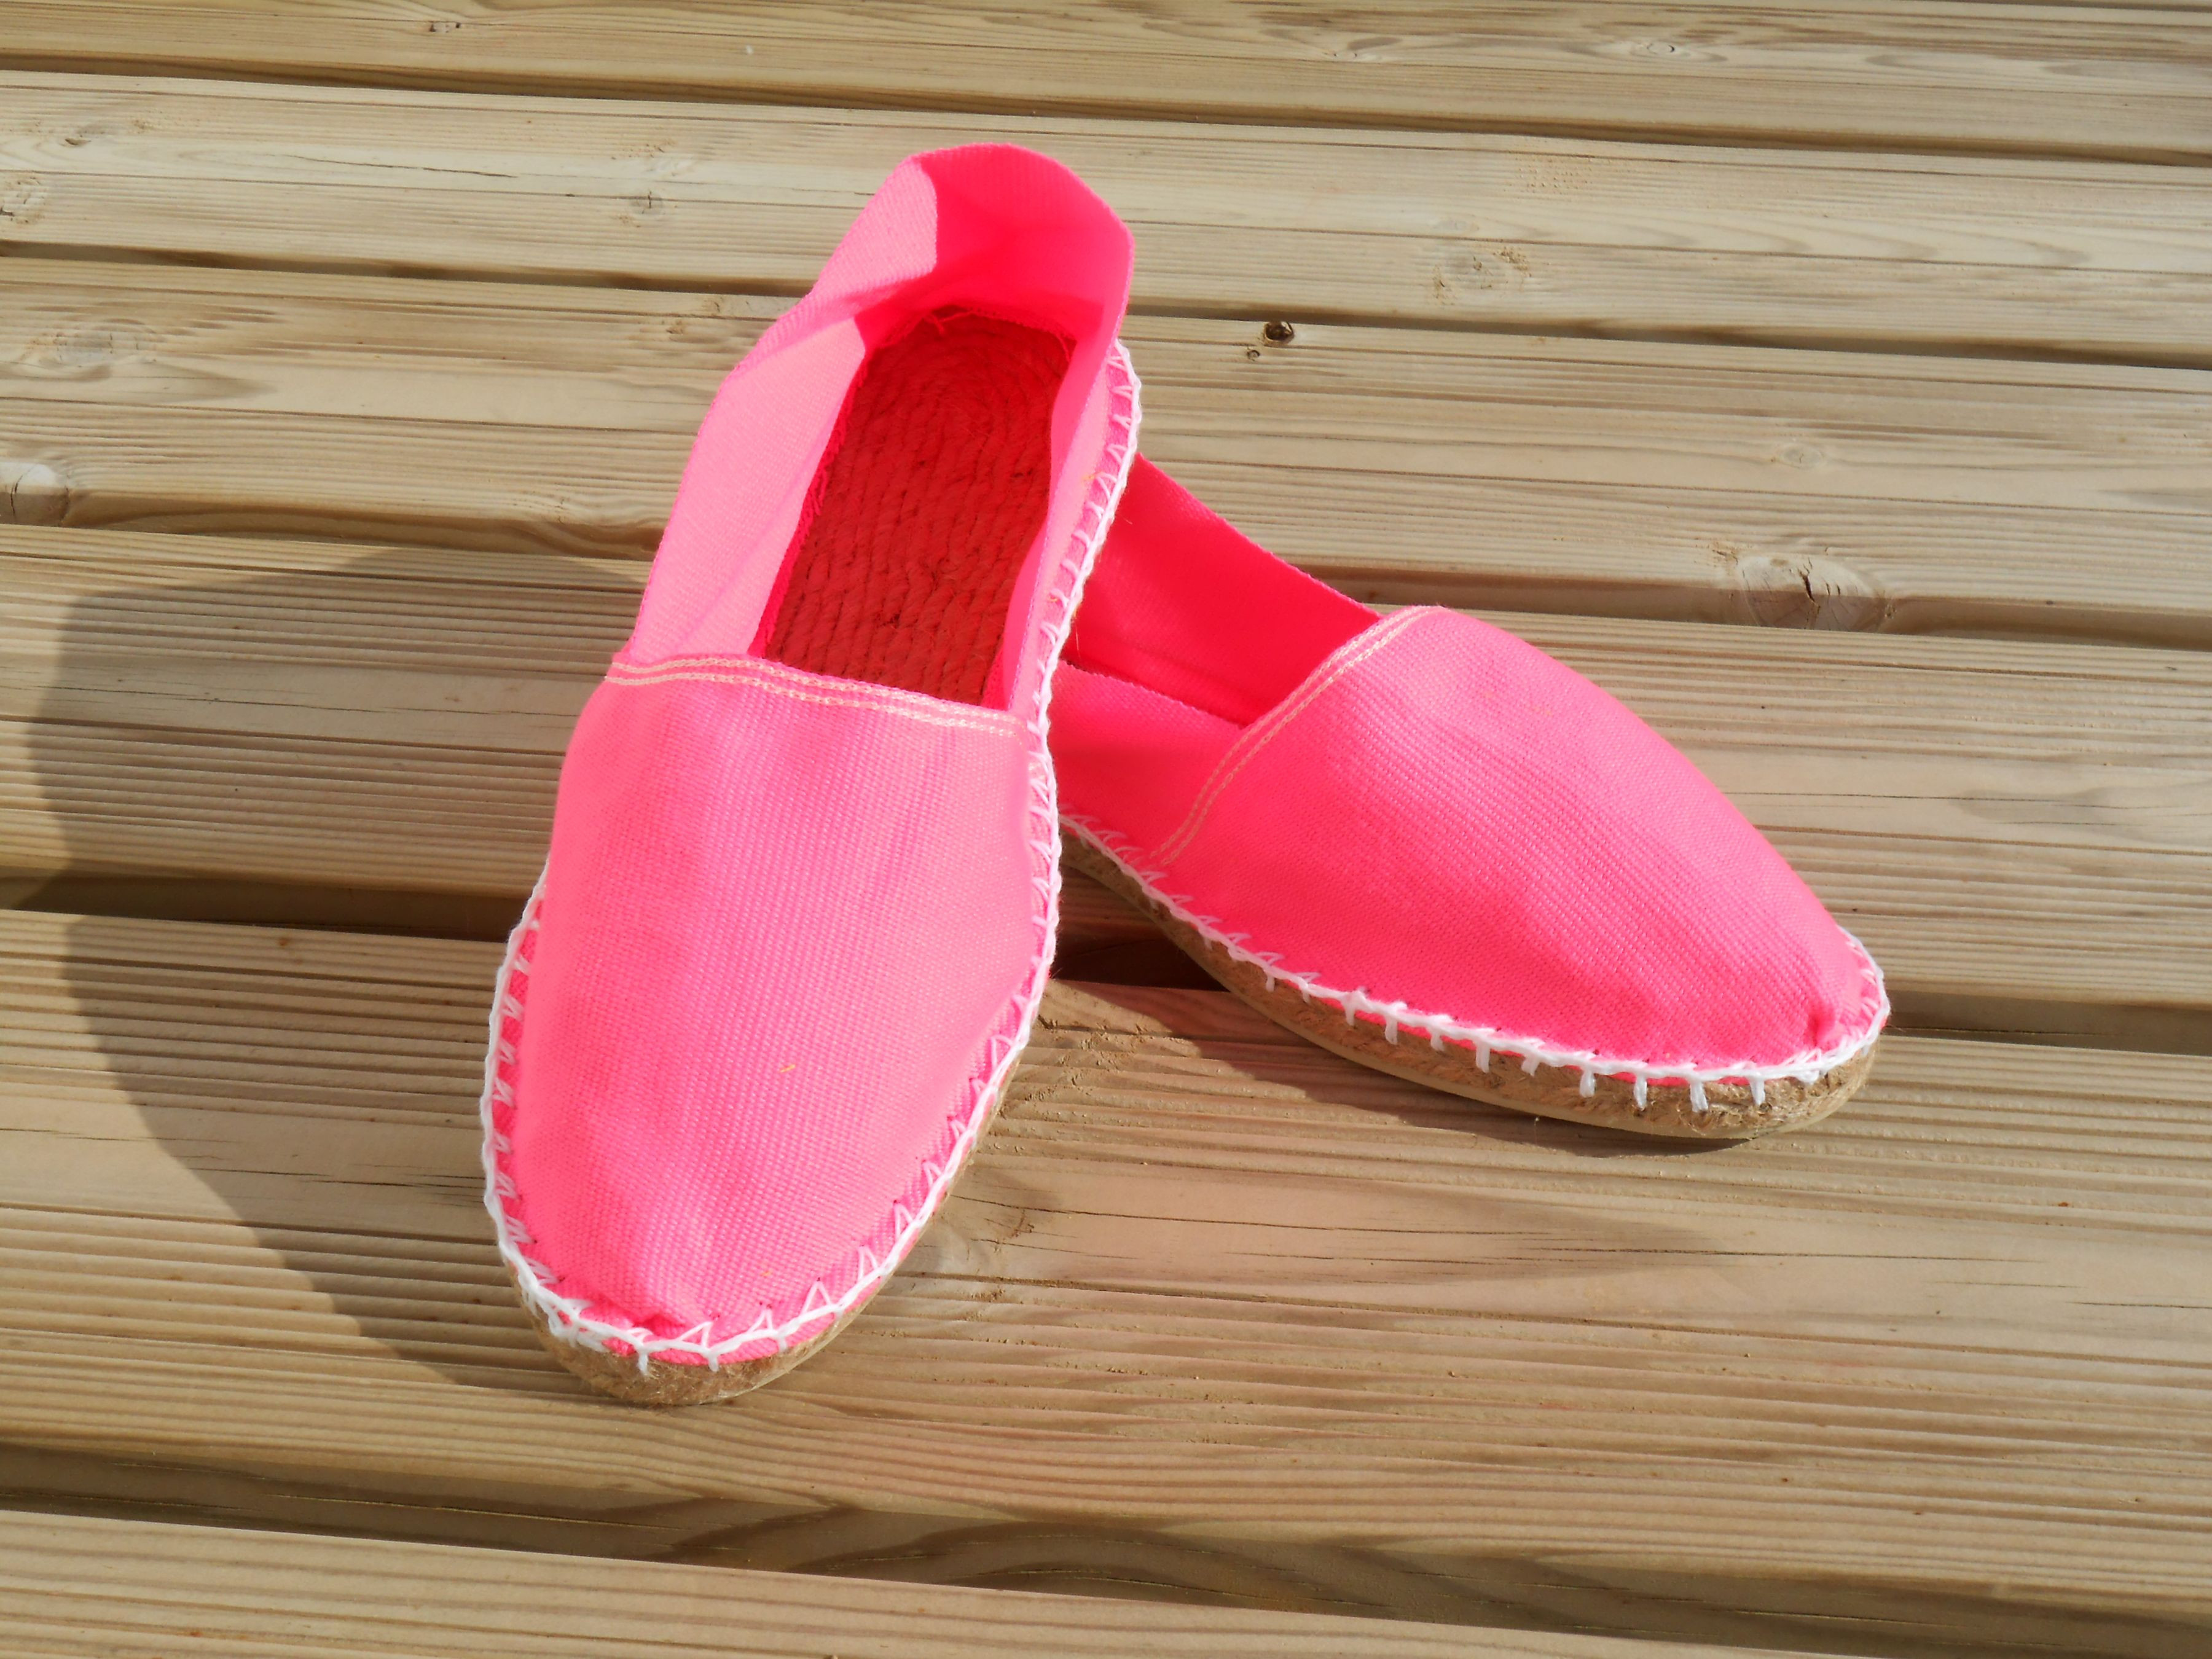 Espadrilles basques rose fluo taille 41